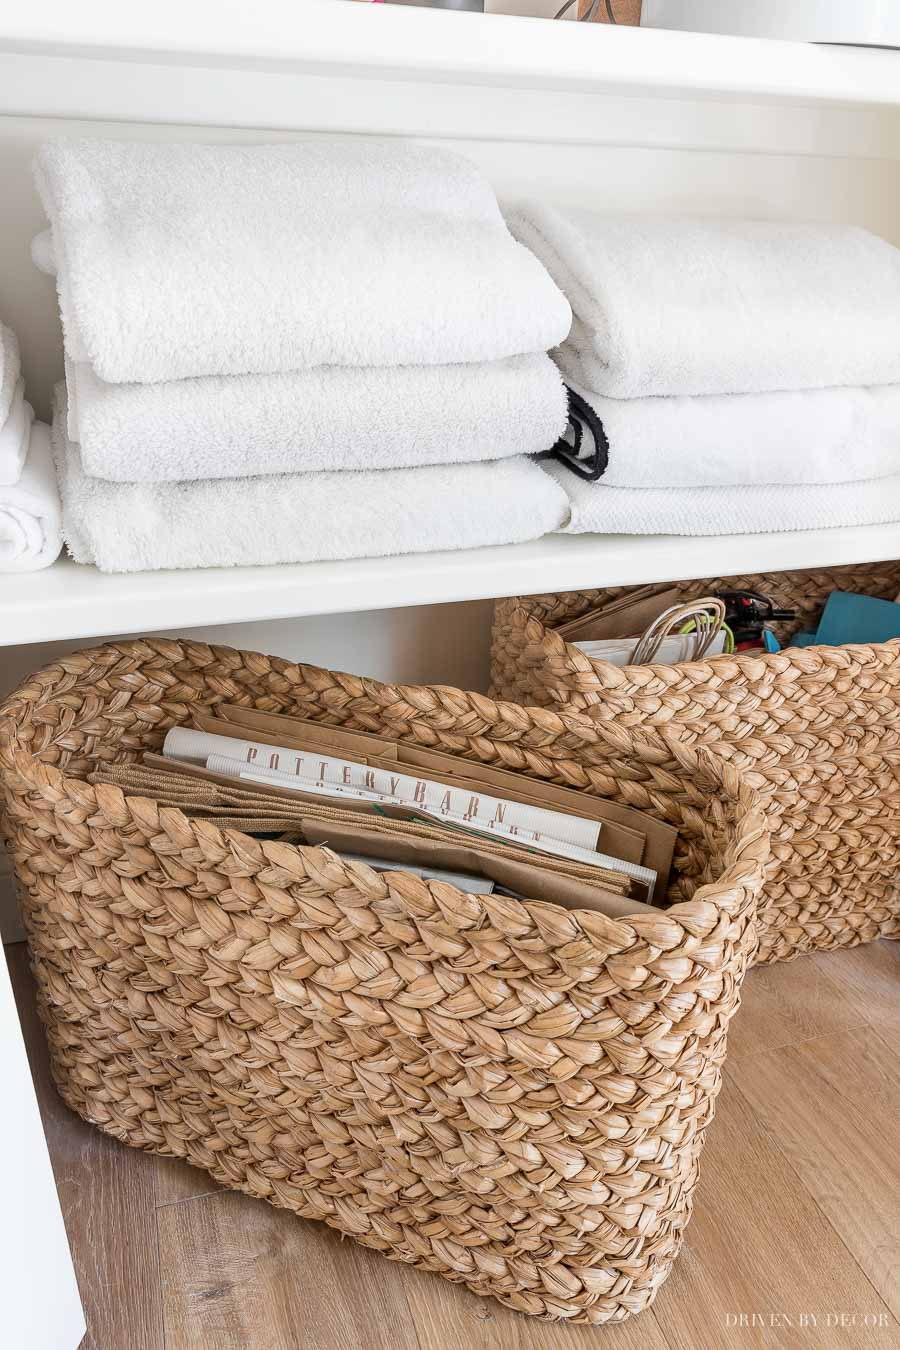 These tall, shallow console baskets work perfectly for storing our grocery and shopping bags!